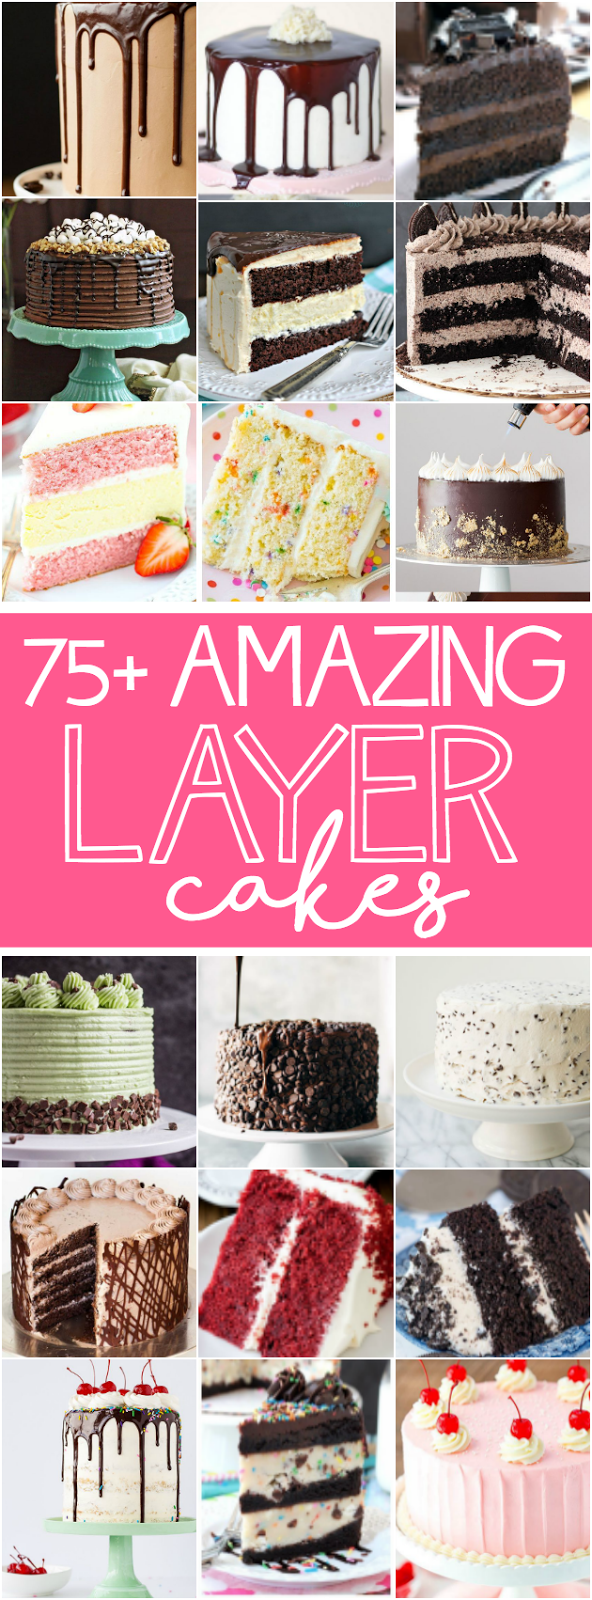 75+ Amazing Layer Cakes